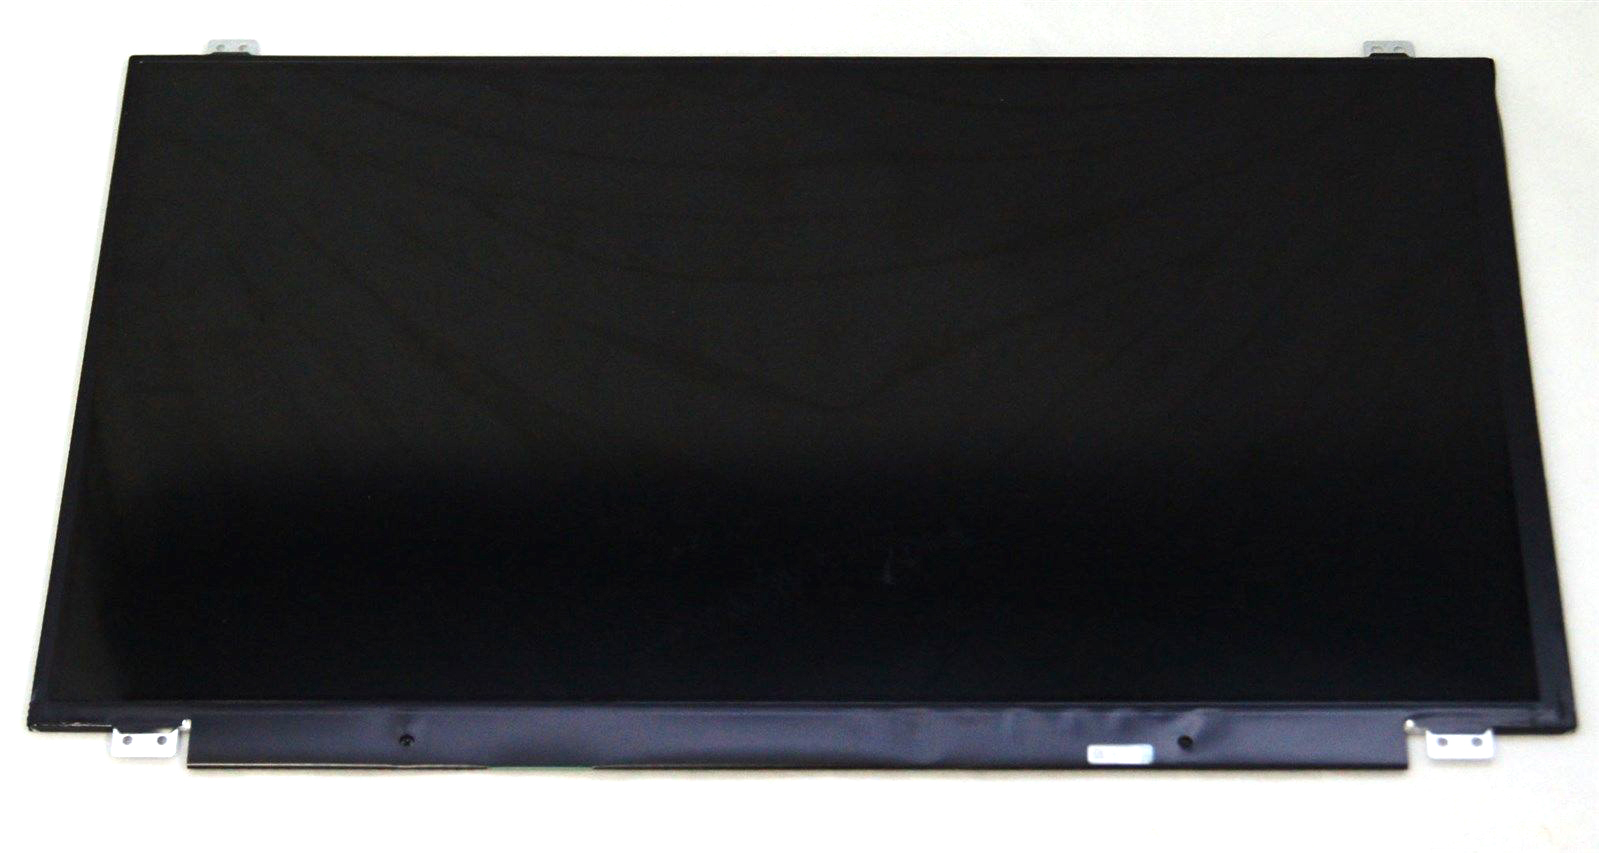 QuYing Laptop LCD Screen for Acer ASPIRE V5-571P V5-552PG E5-531 ES1-512 E5-572G E5-573 E5-573G SERIES (15.6 1366x768 30pin) new for acer aspire v5 531 v5 571 v5 571g lcd lvds cable va51 50 4vm06 002 free shipping